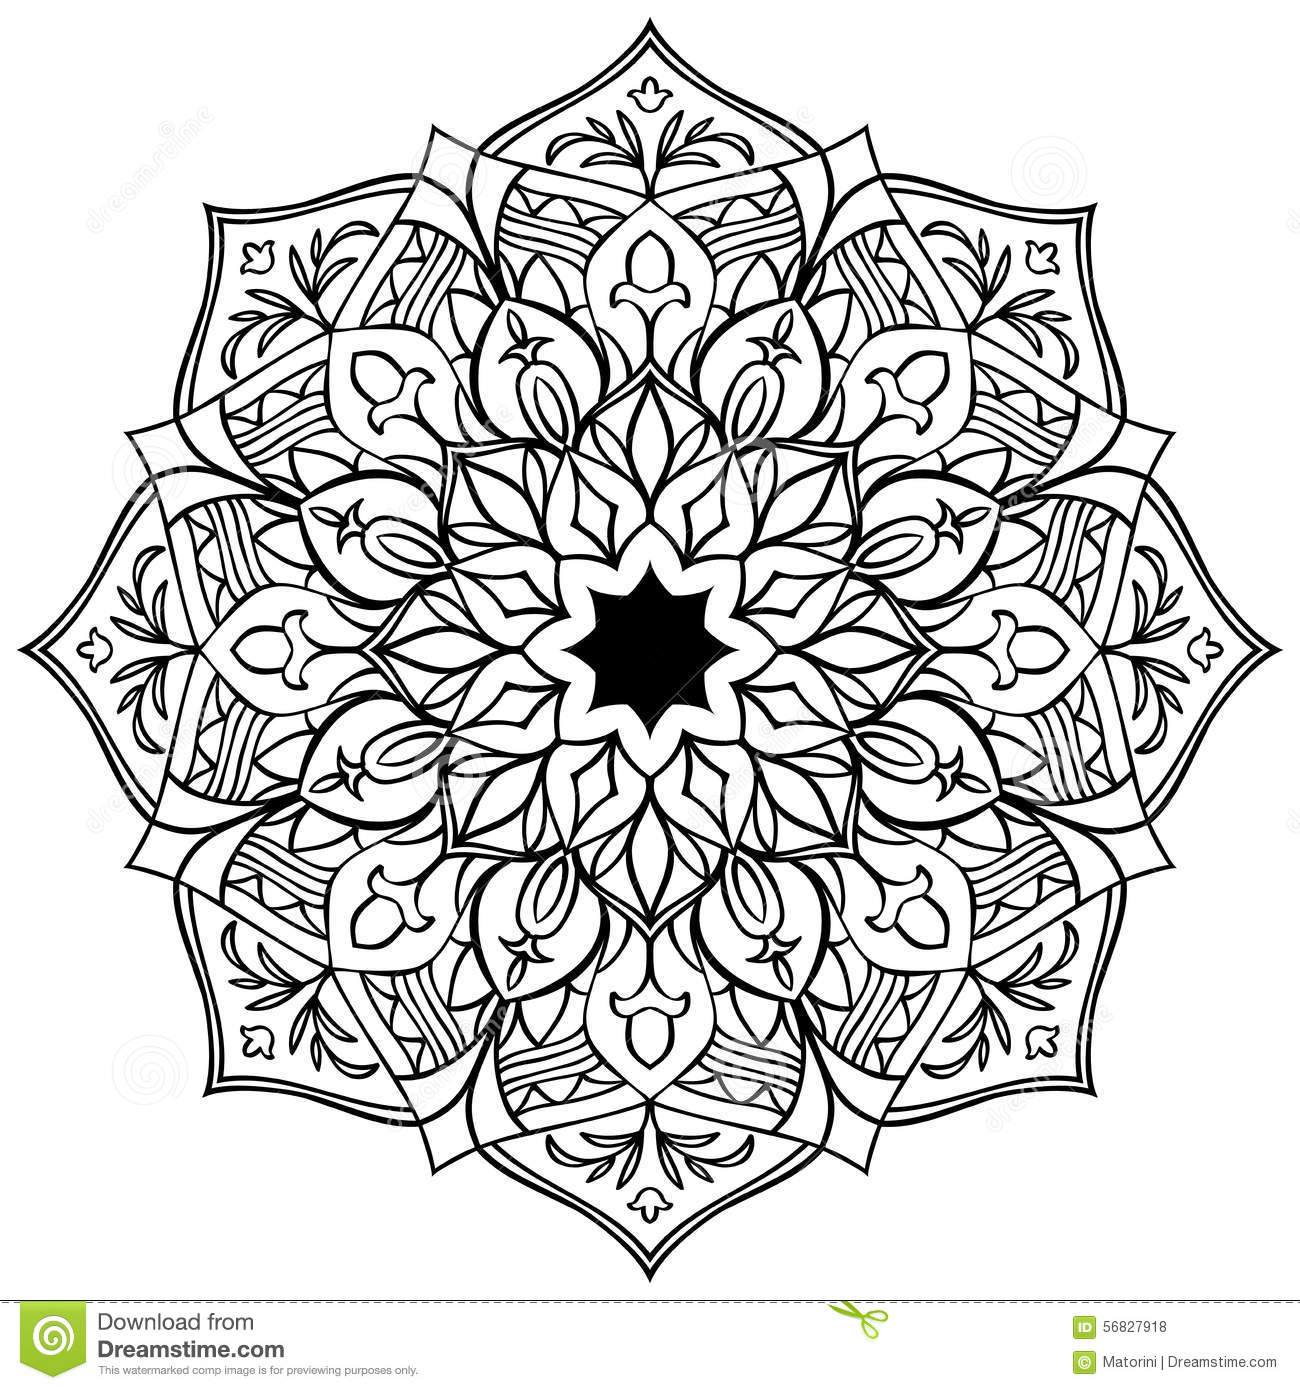 african mandala coloring pages coloring pages about countries and culture in the world pages mandala african coloring